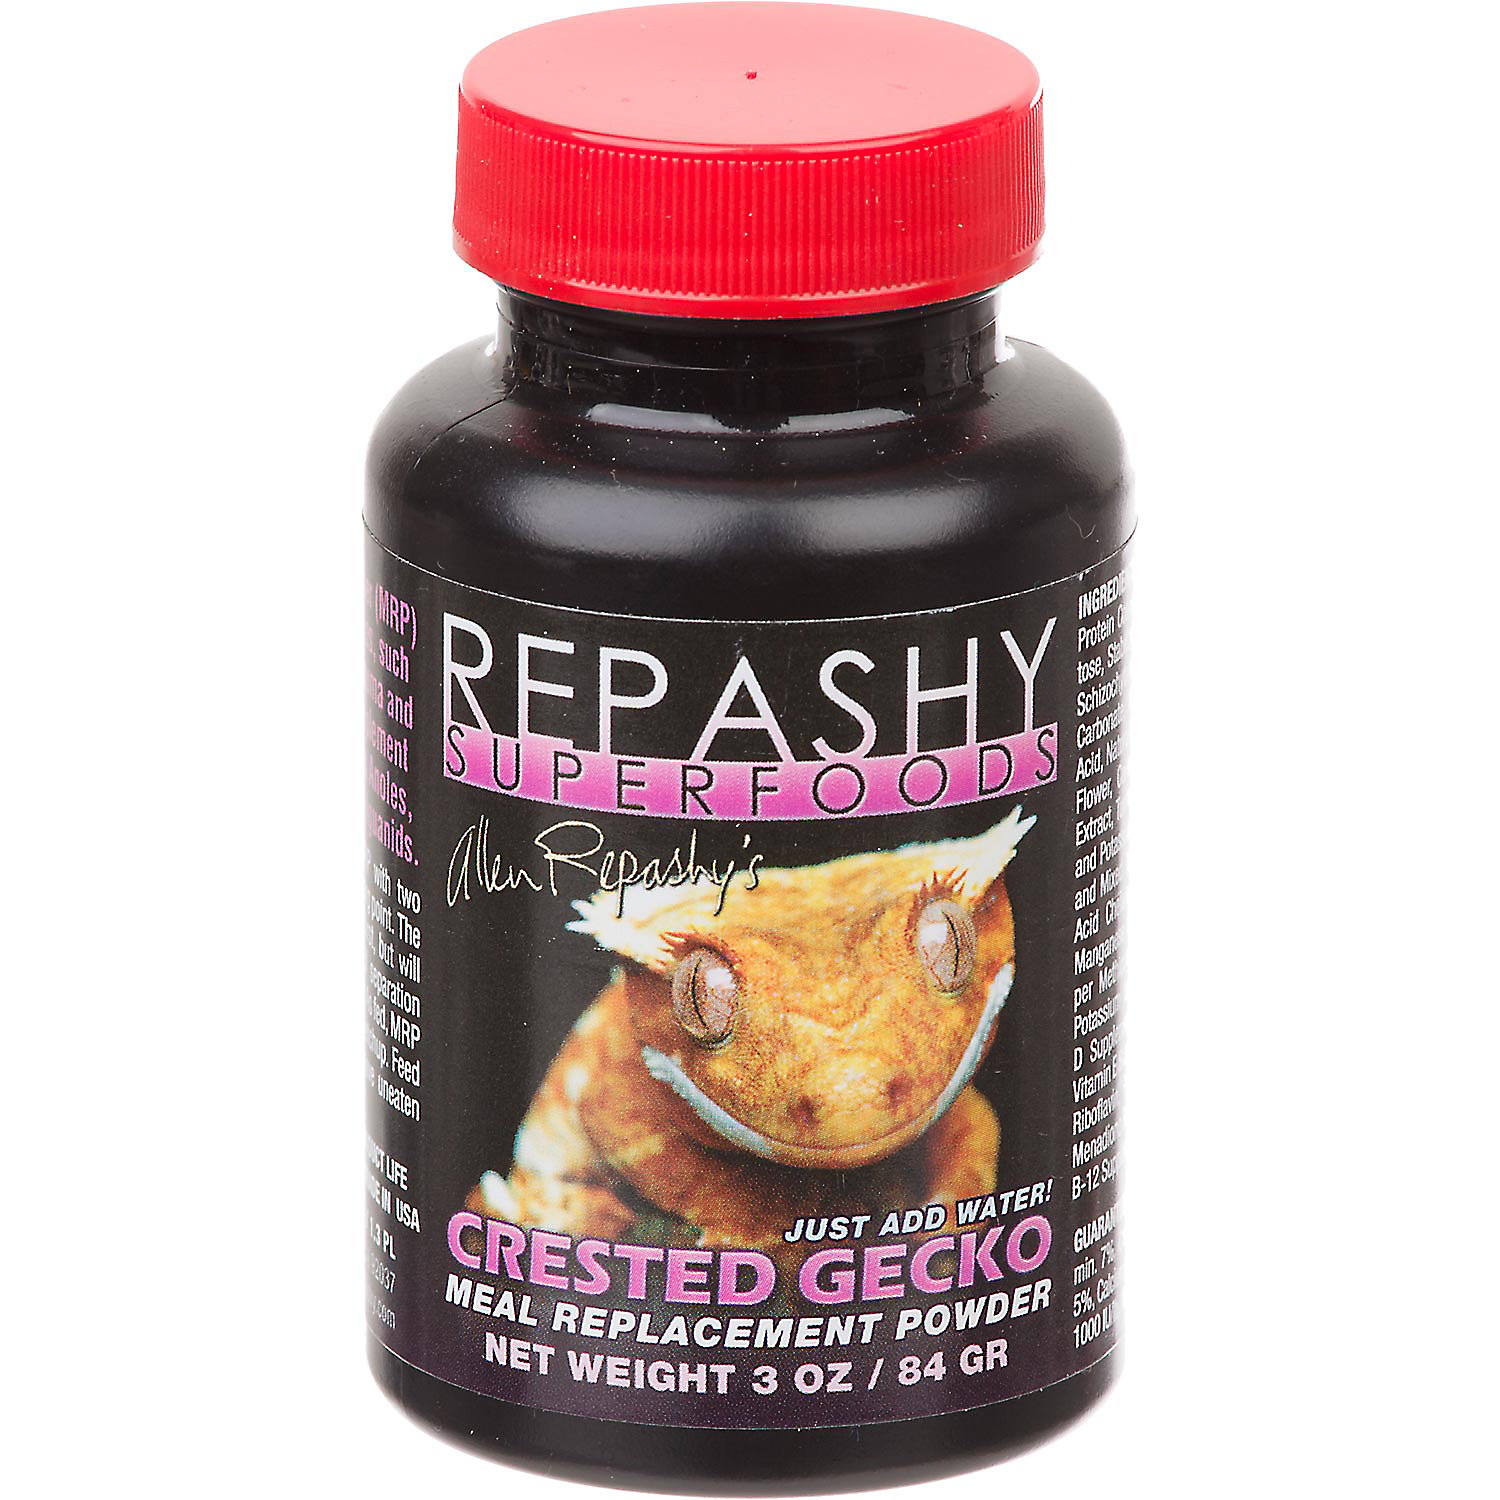 Repashy Super Foods Crested Gecko Meal Replacement Powder 3 Oz.